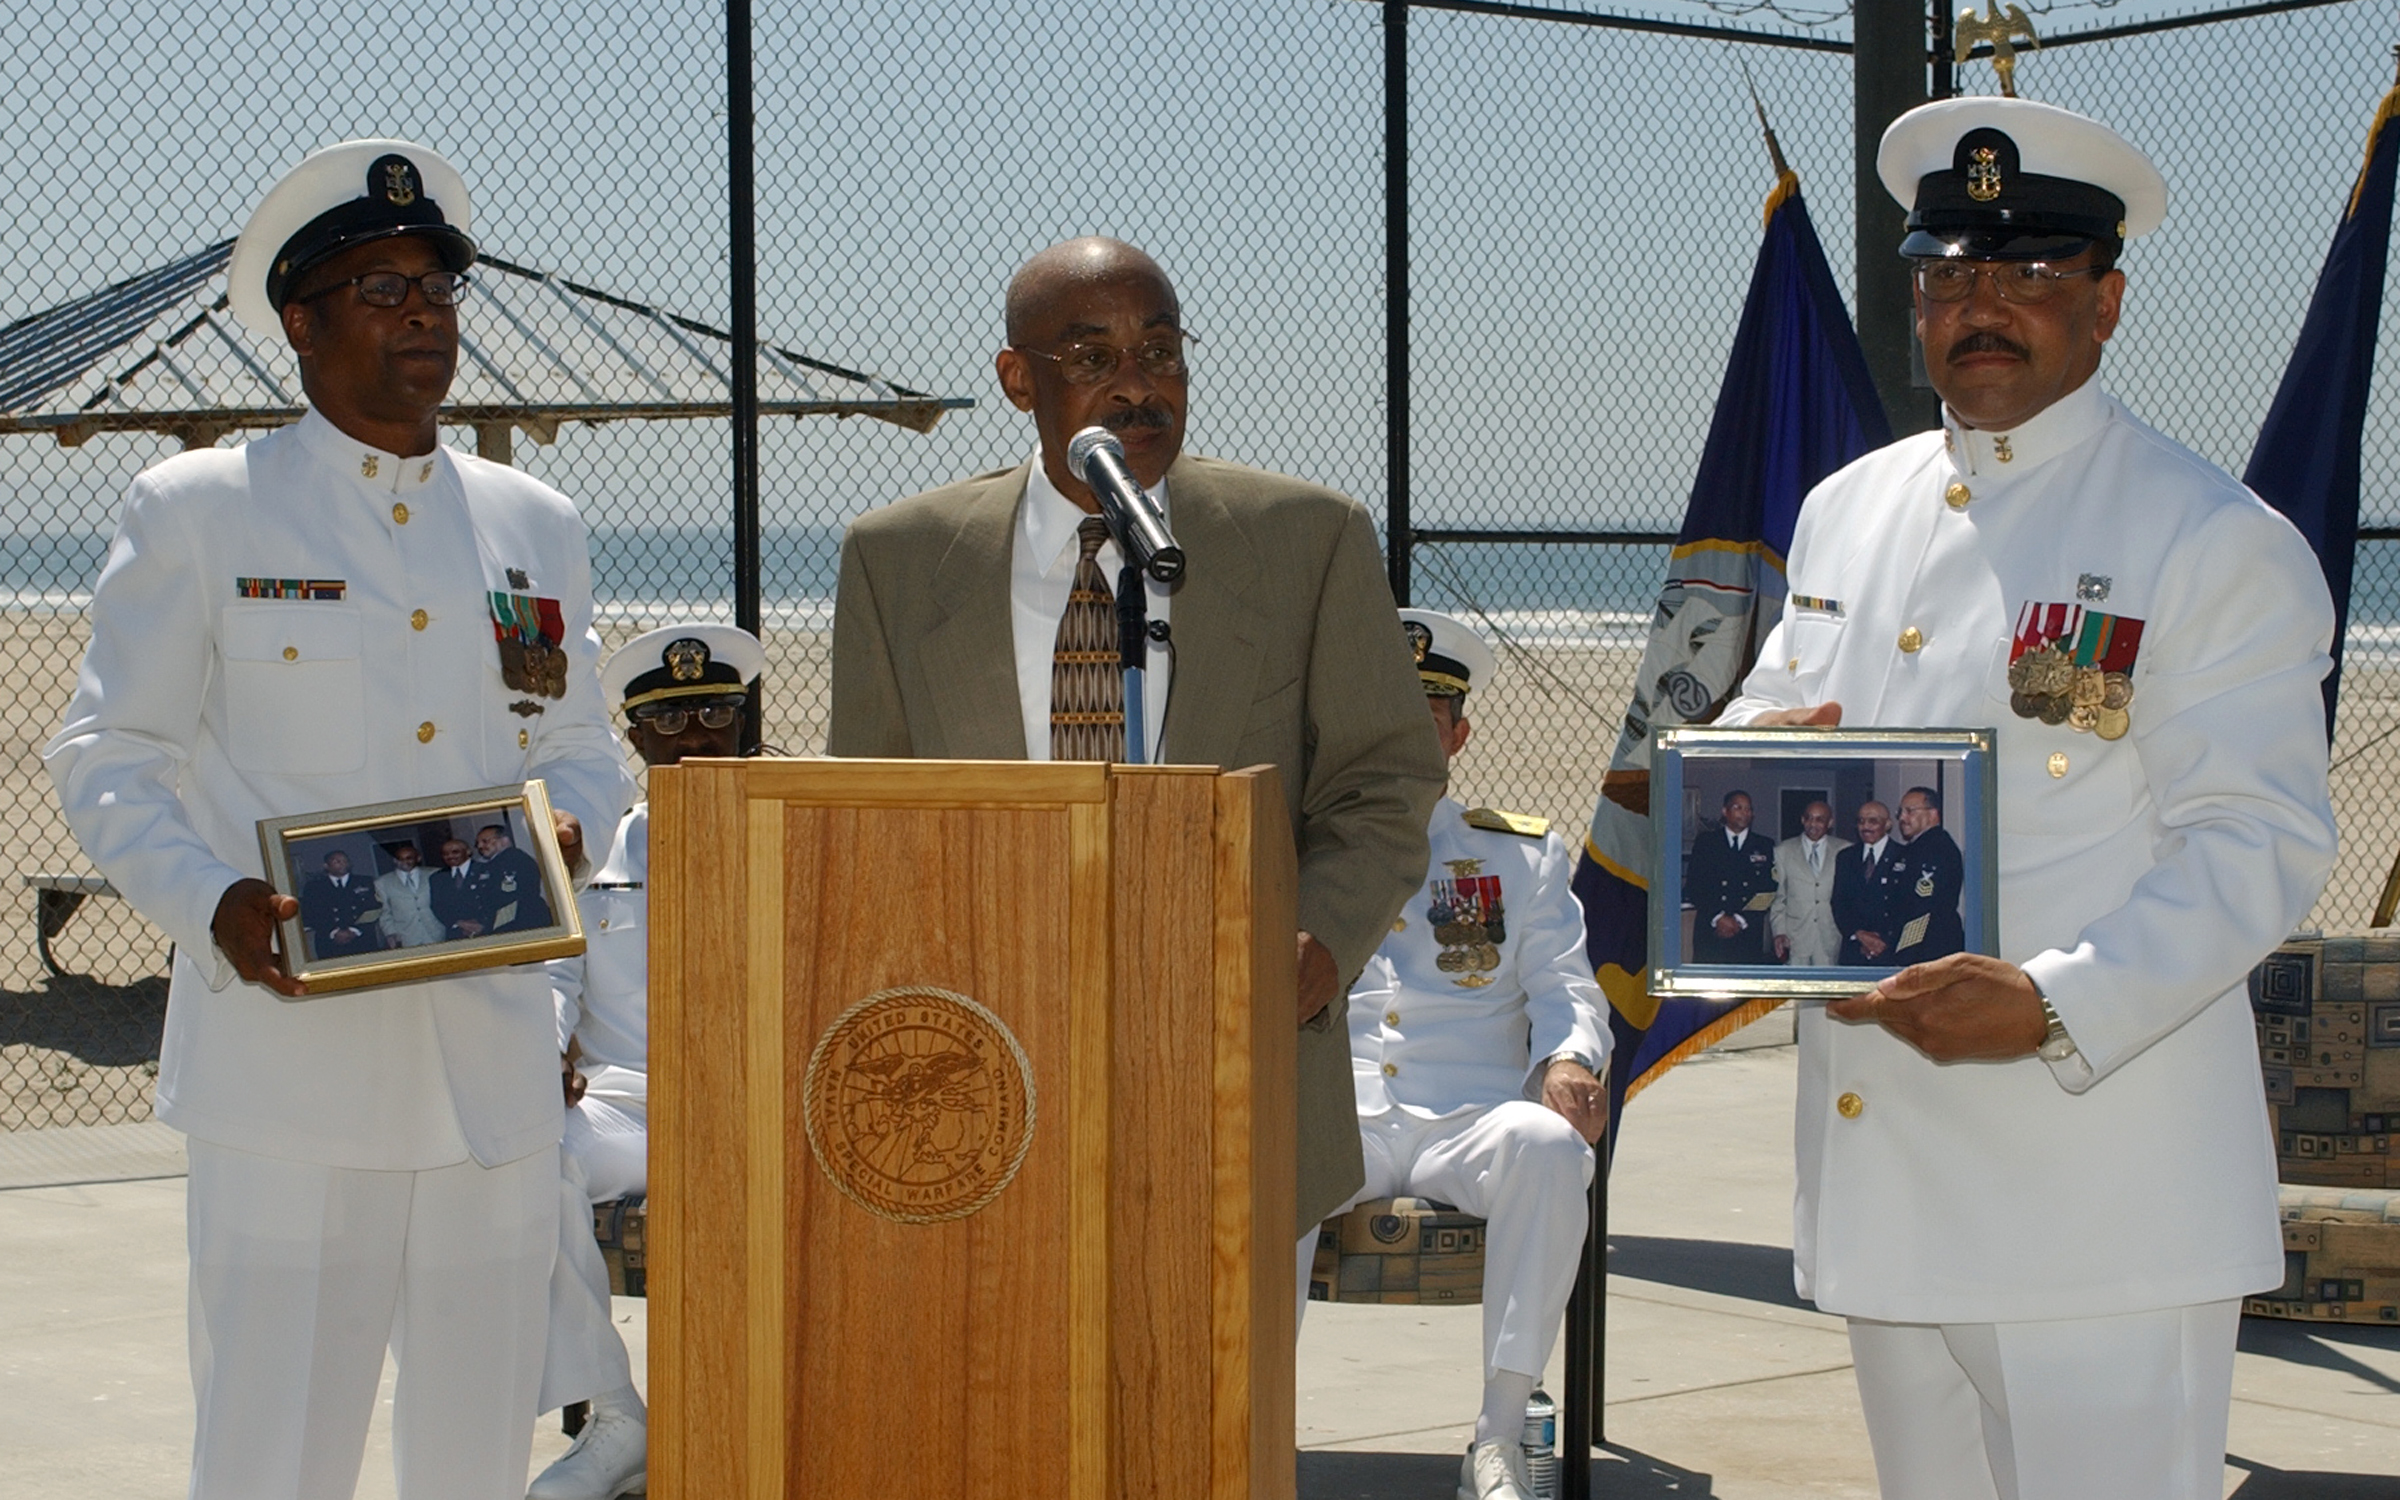 """a description of the kind of man carl brashear is Carl m brashear was the united states navy's first black master diver whose  story was told in the 2000 movie """"men of honor."""